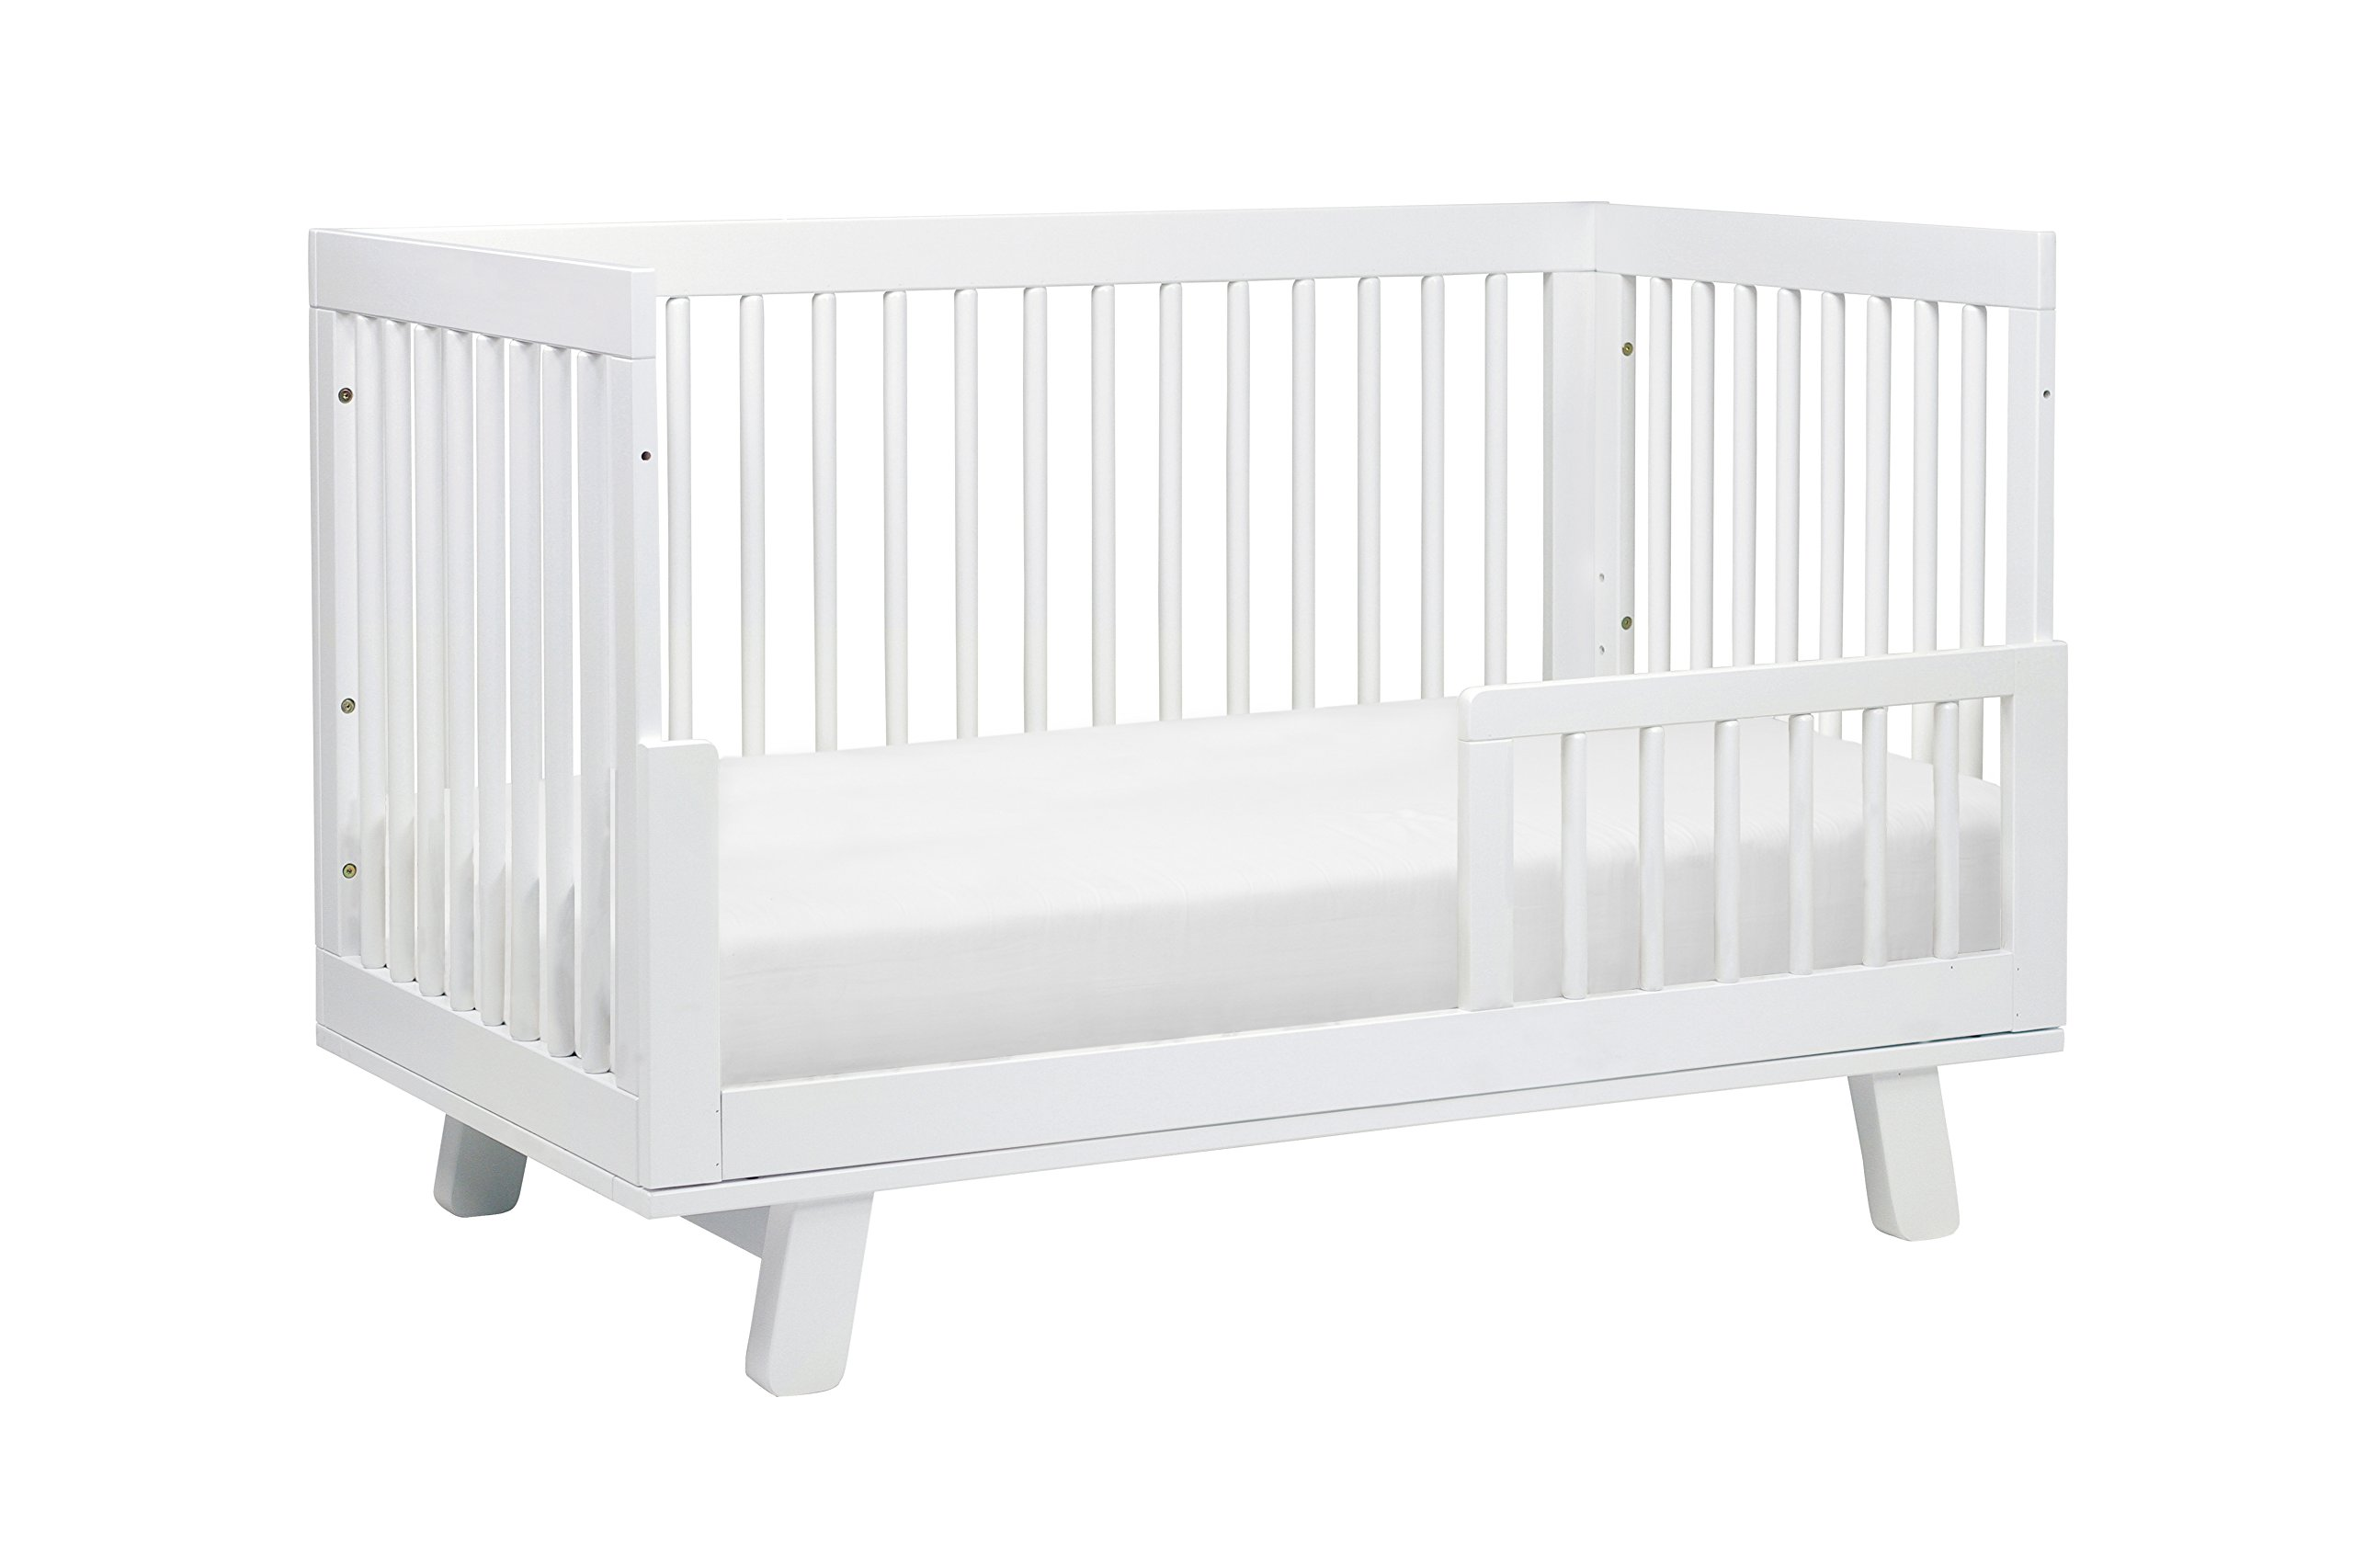 Babyletto Hudson 3-in-1 Convertible Crib with Toddler Bed Conversion Kit, White by babyletto (Image #6)